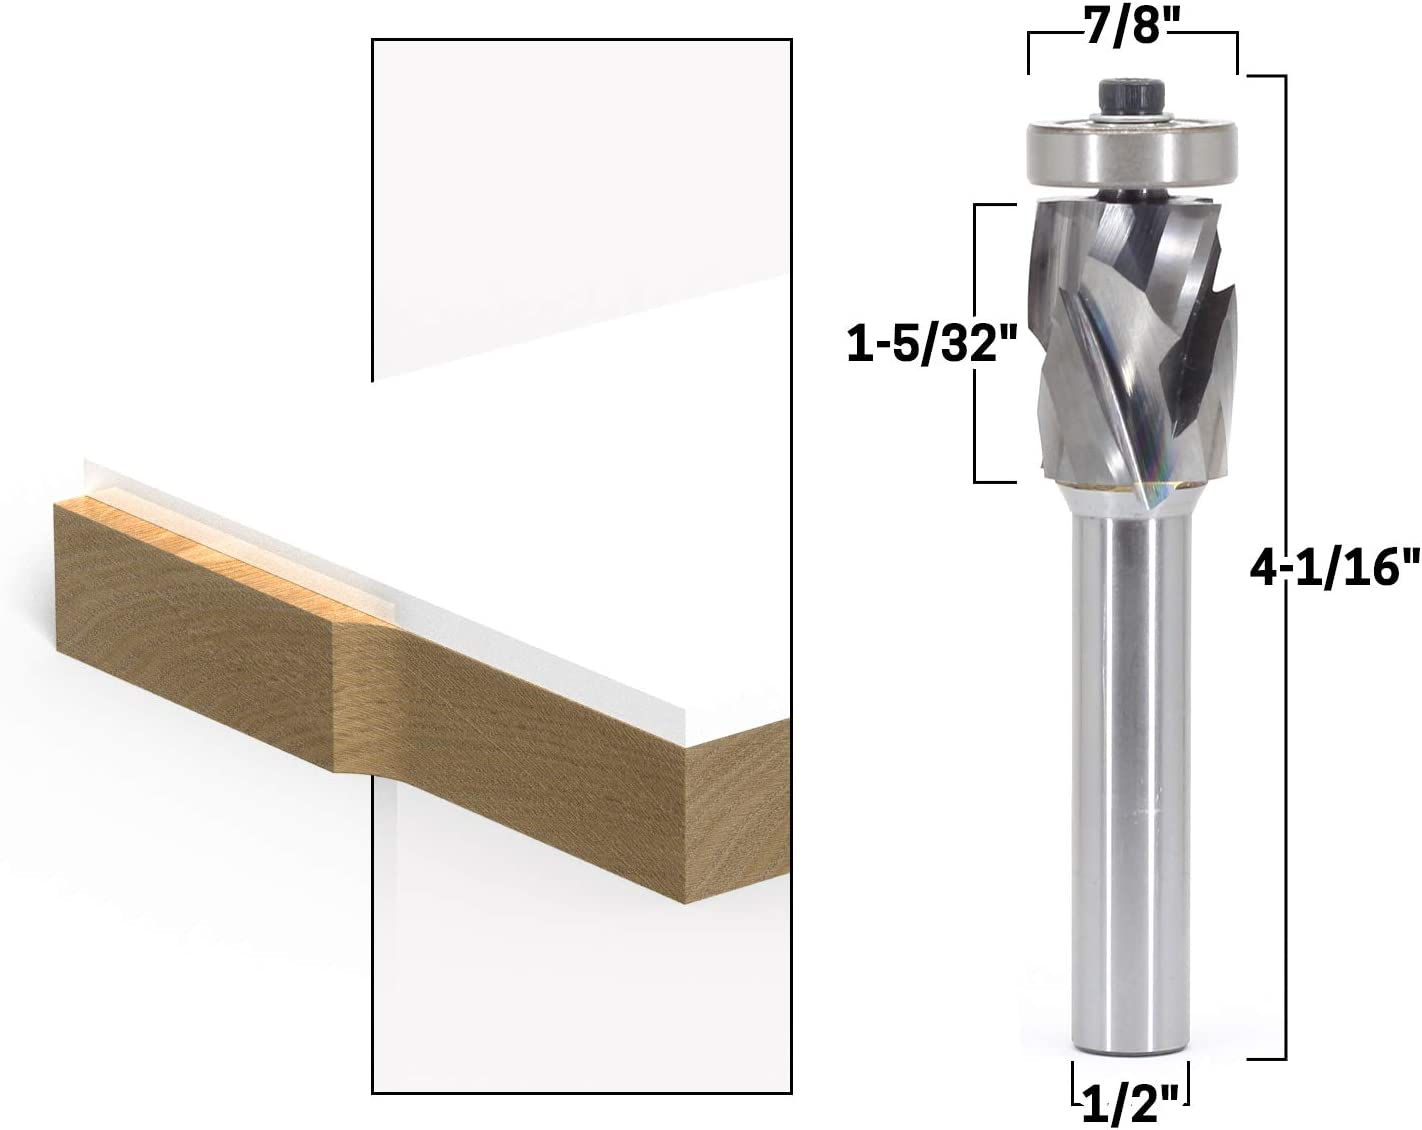 Yonico 33202 Top /& Bottom Bearing Ultra-Performance Compression Flush Trim Router Bit 1//2-Inch Shank